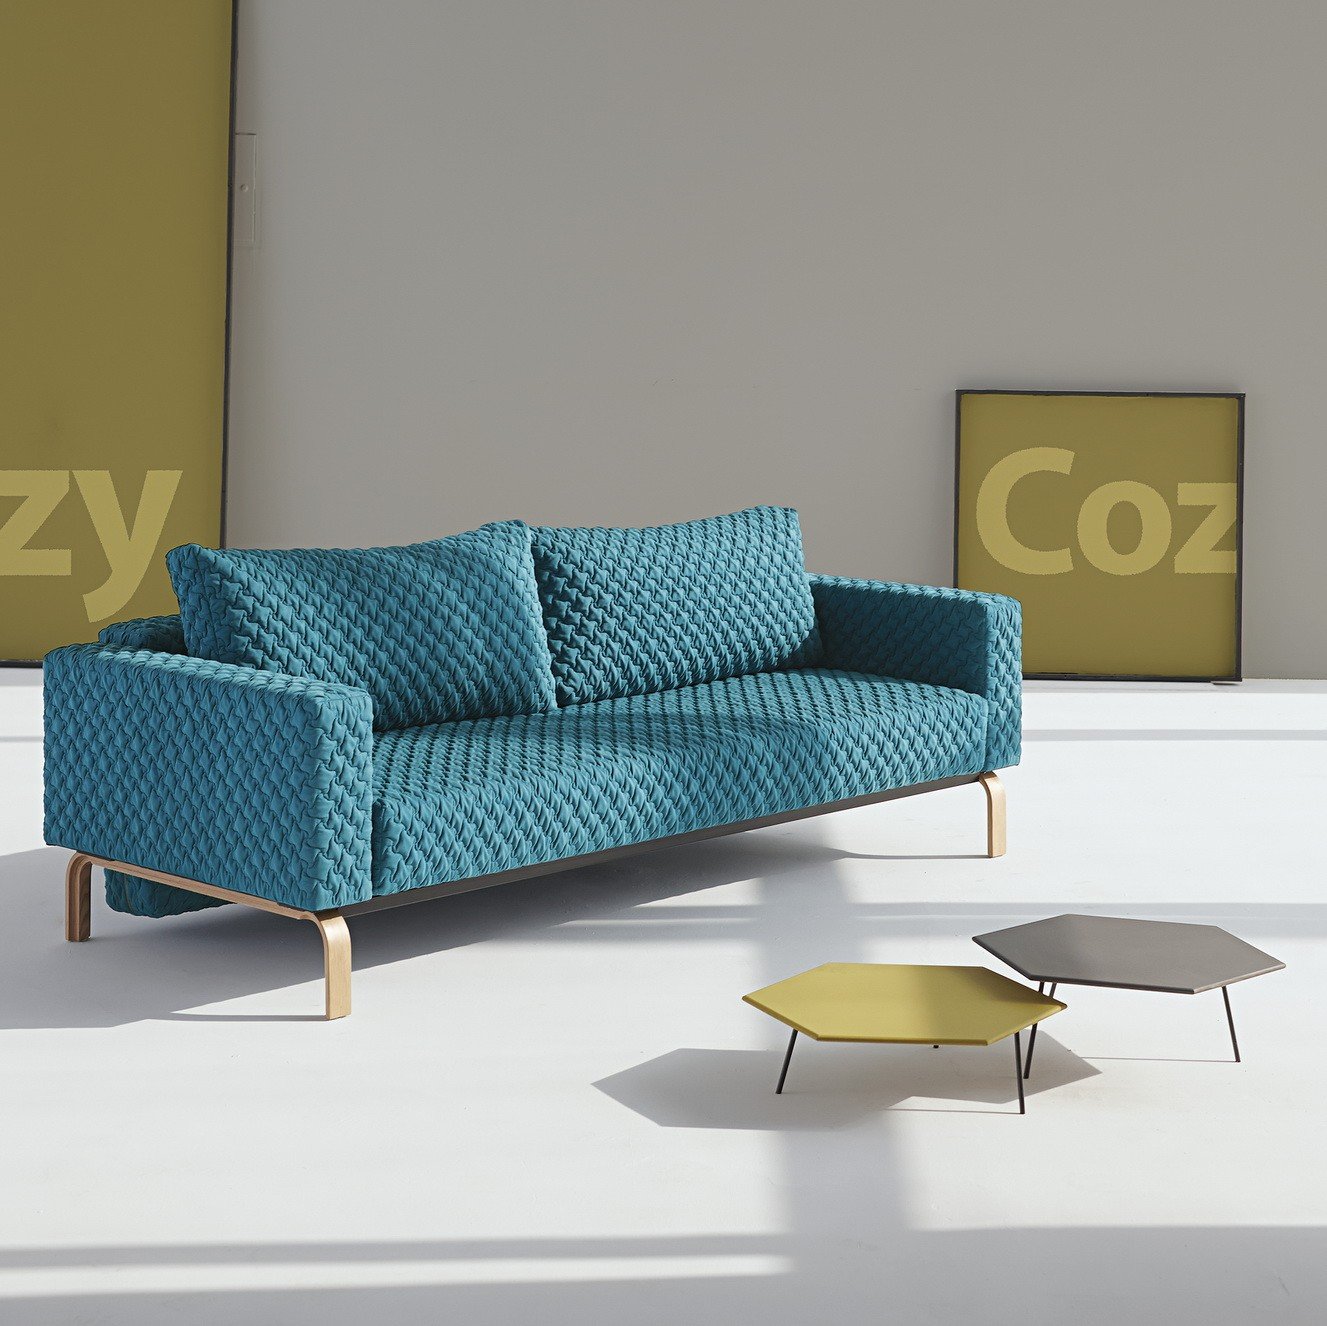 Cassius Coz sofa lacquered oak